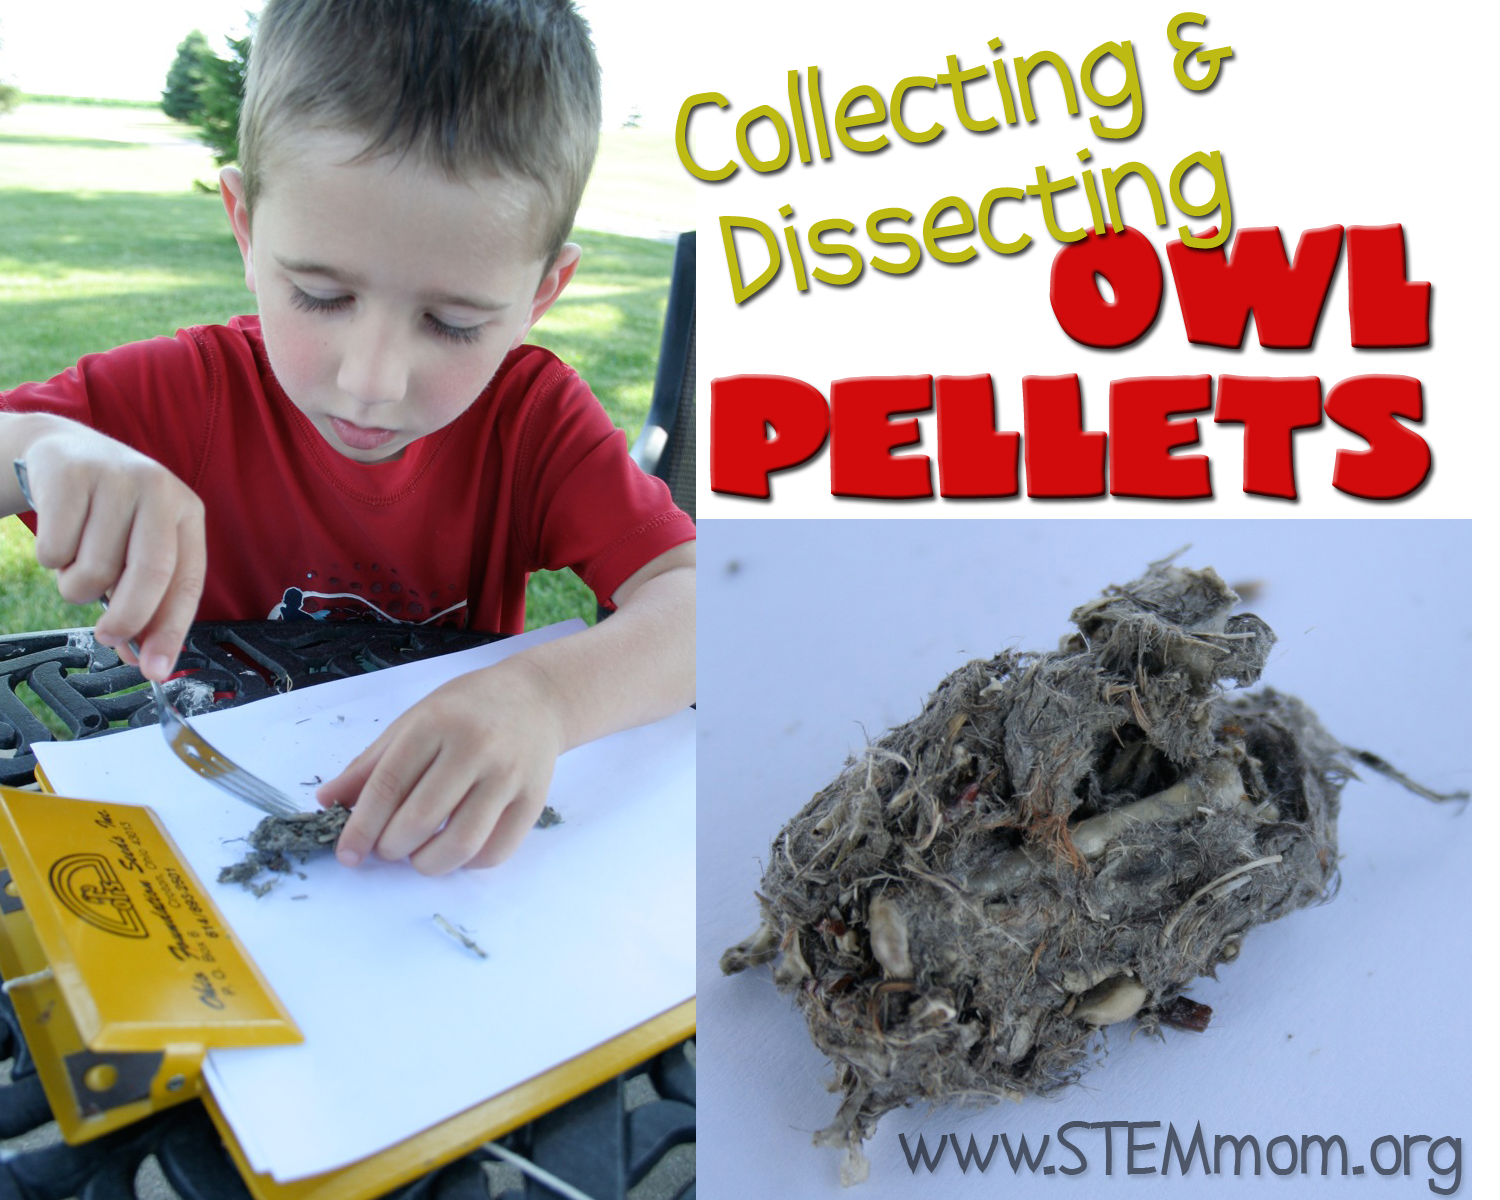 Dr Stem Mom Collecting Amp Dissecting Owl Vomit Pellets